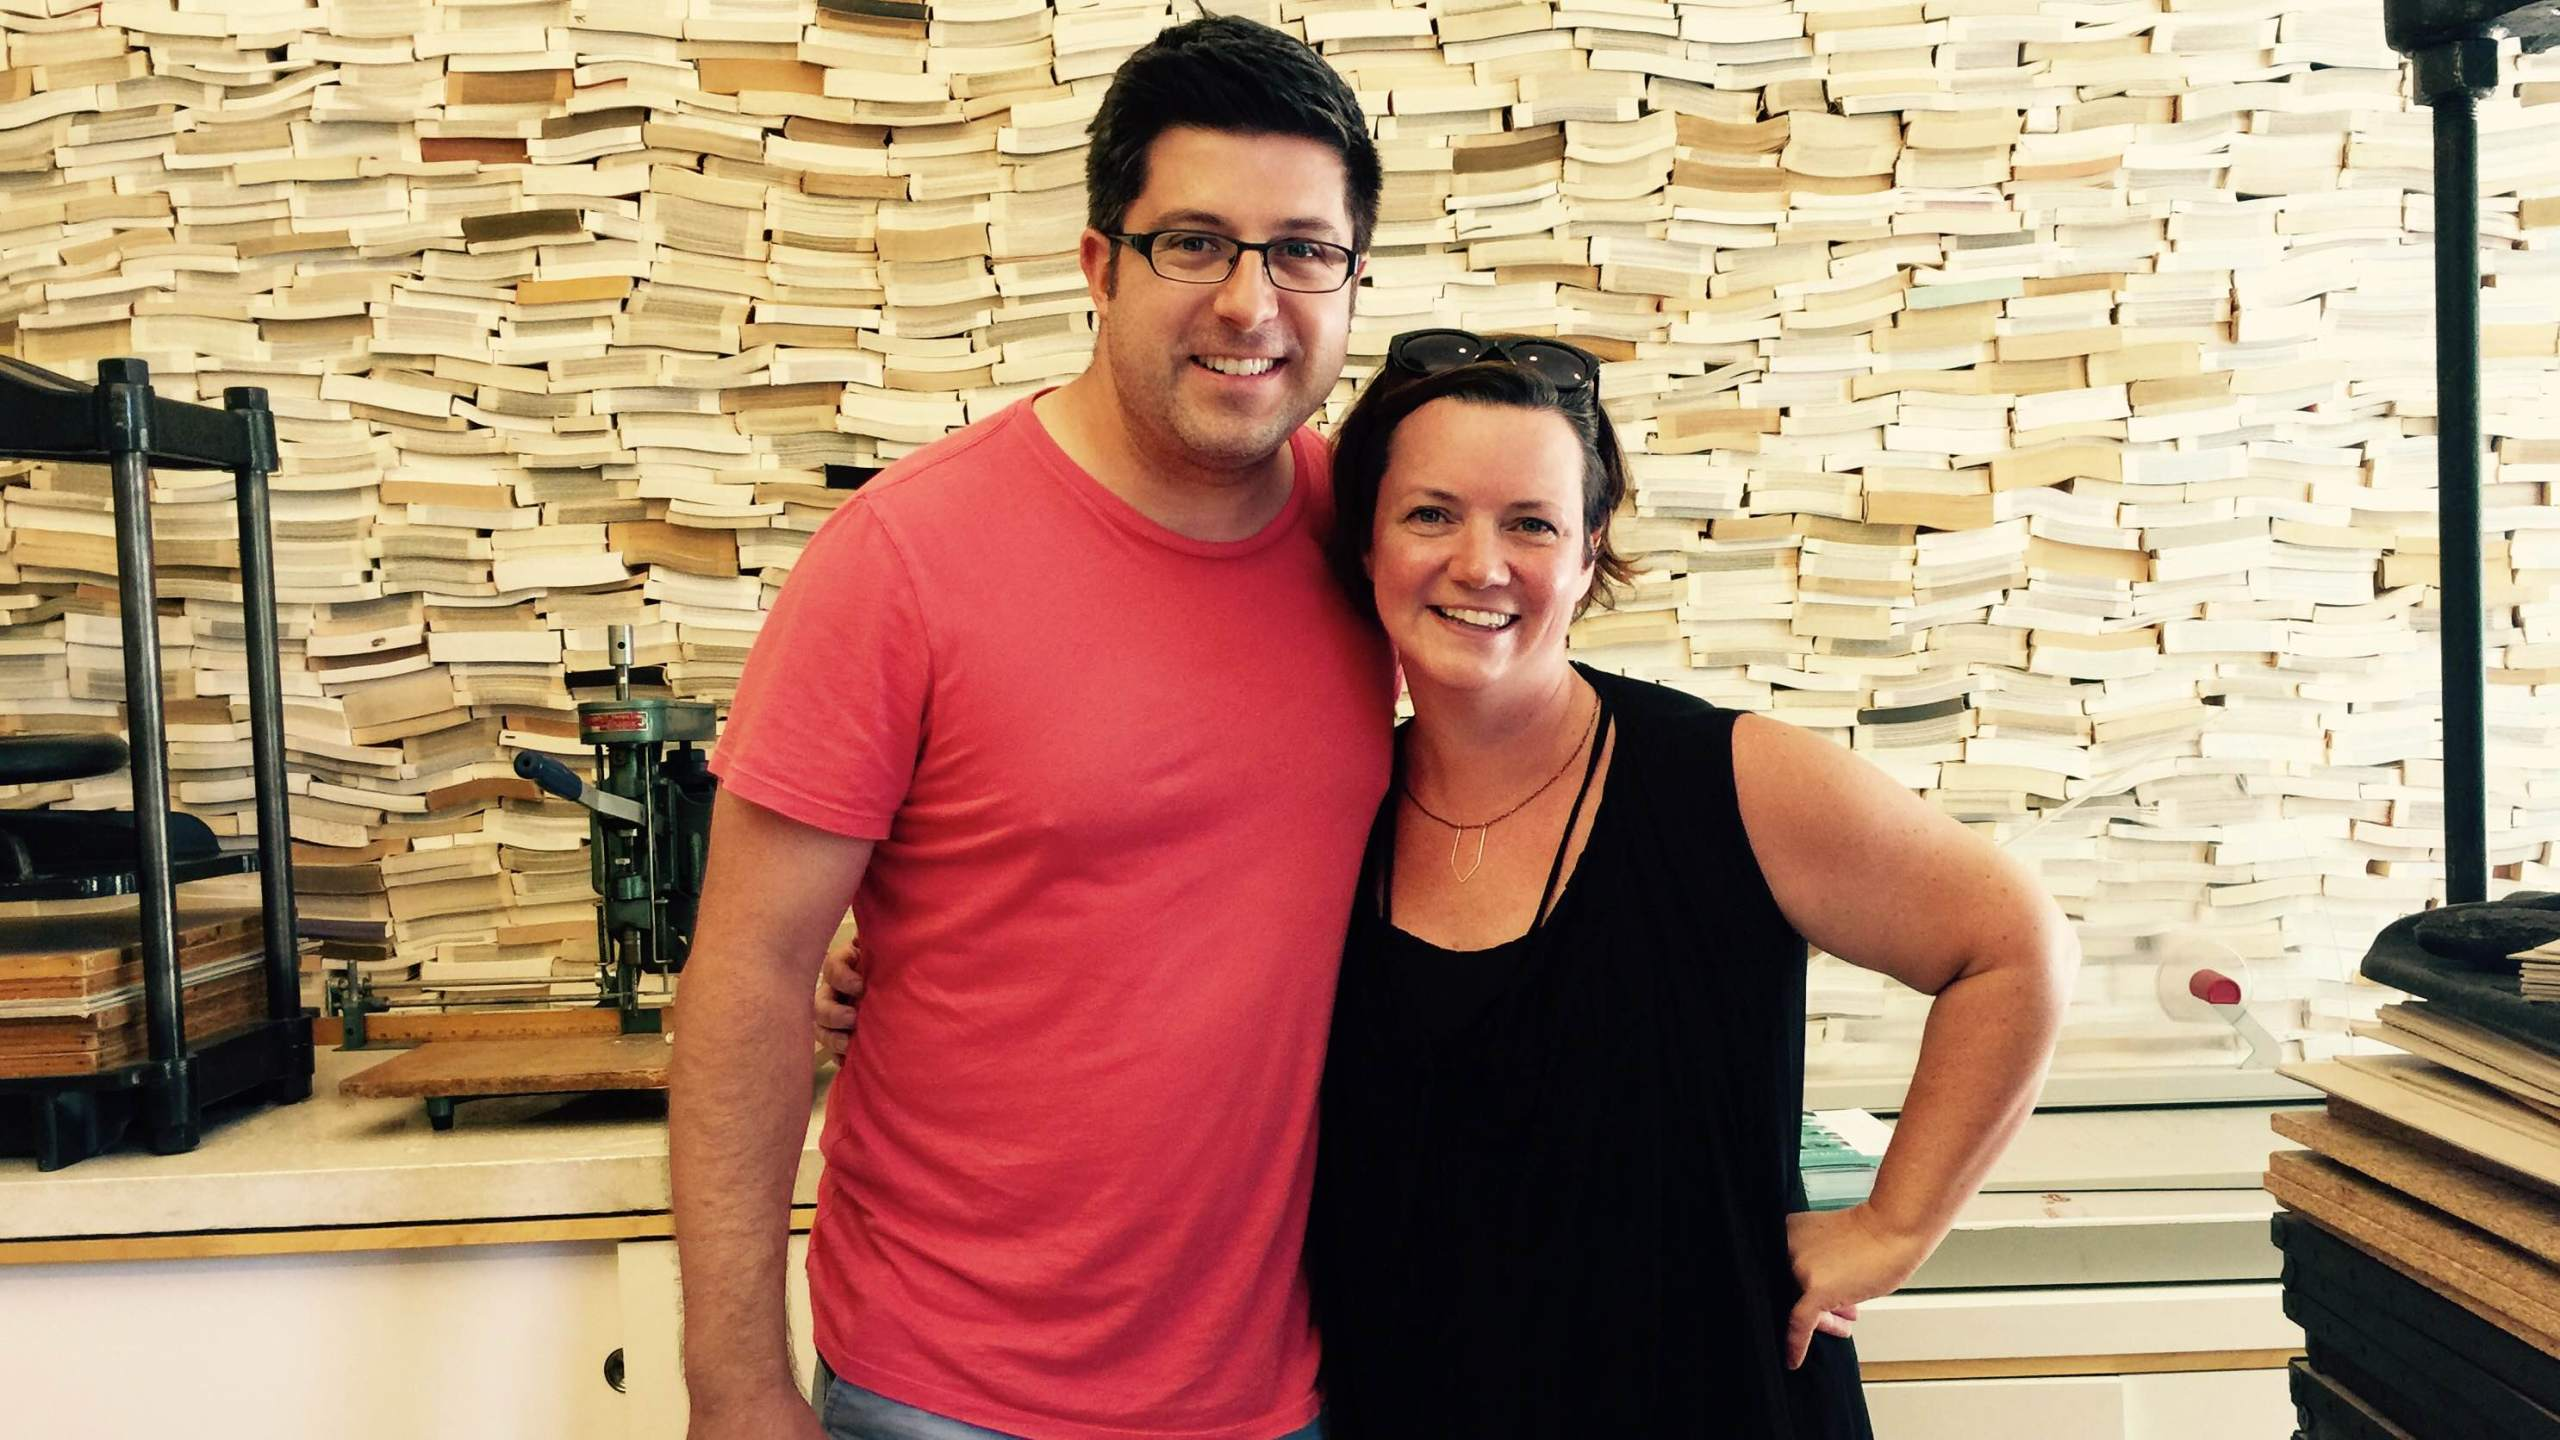 OTL host Mike Stephen visits with BookClub Chicago co-owner Amanda Love at her Wicker Park studio.